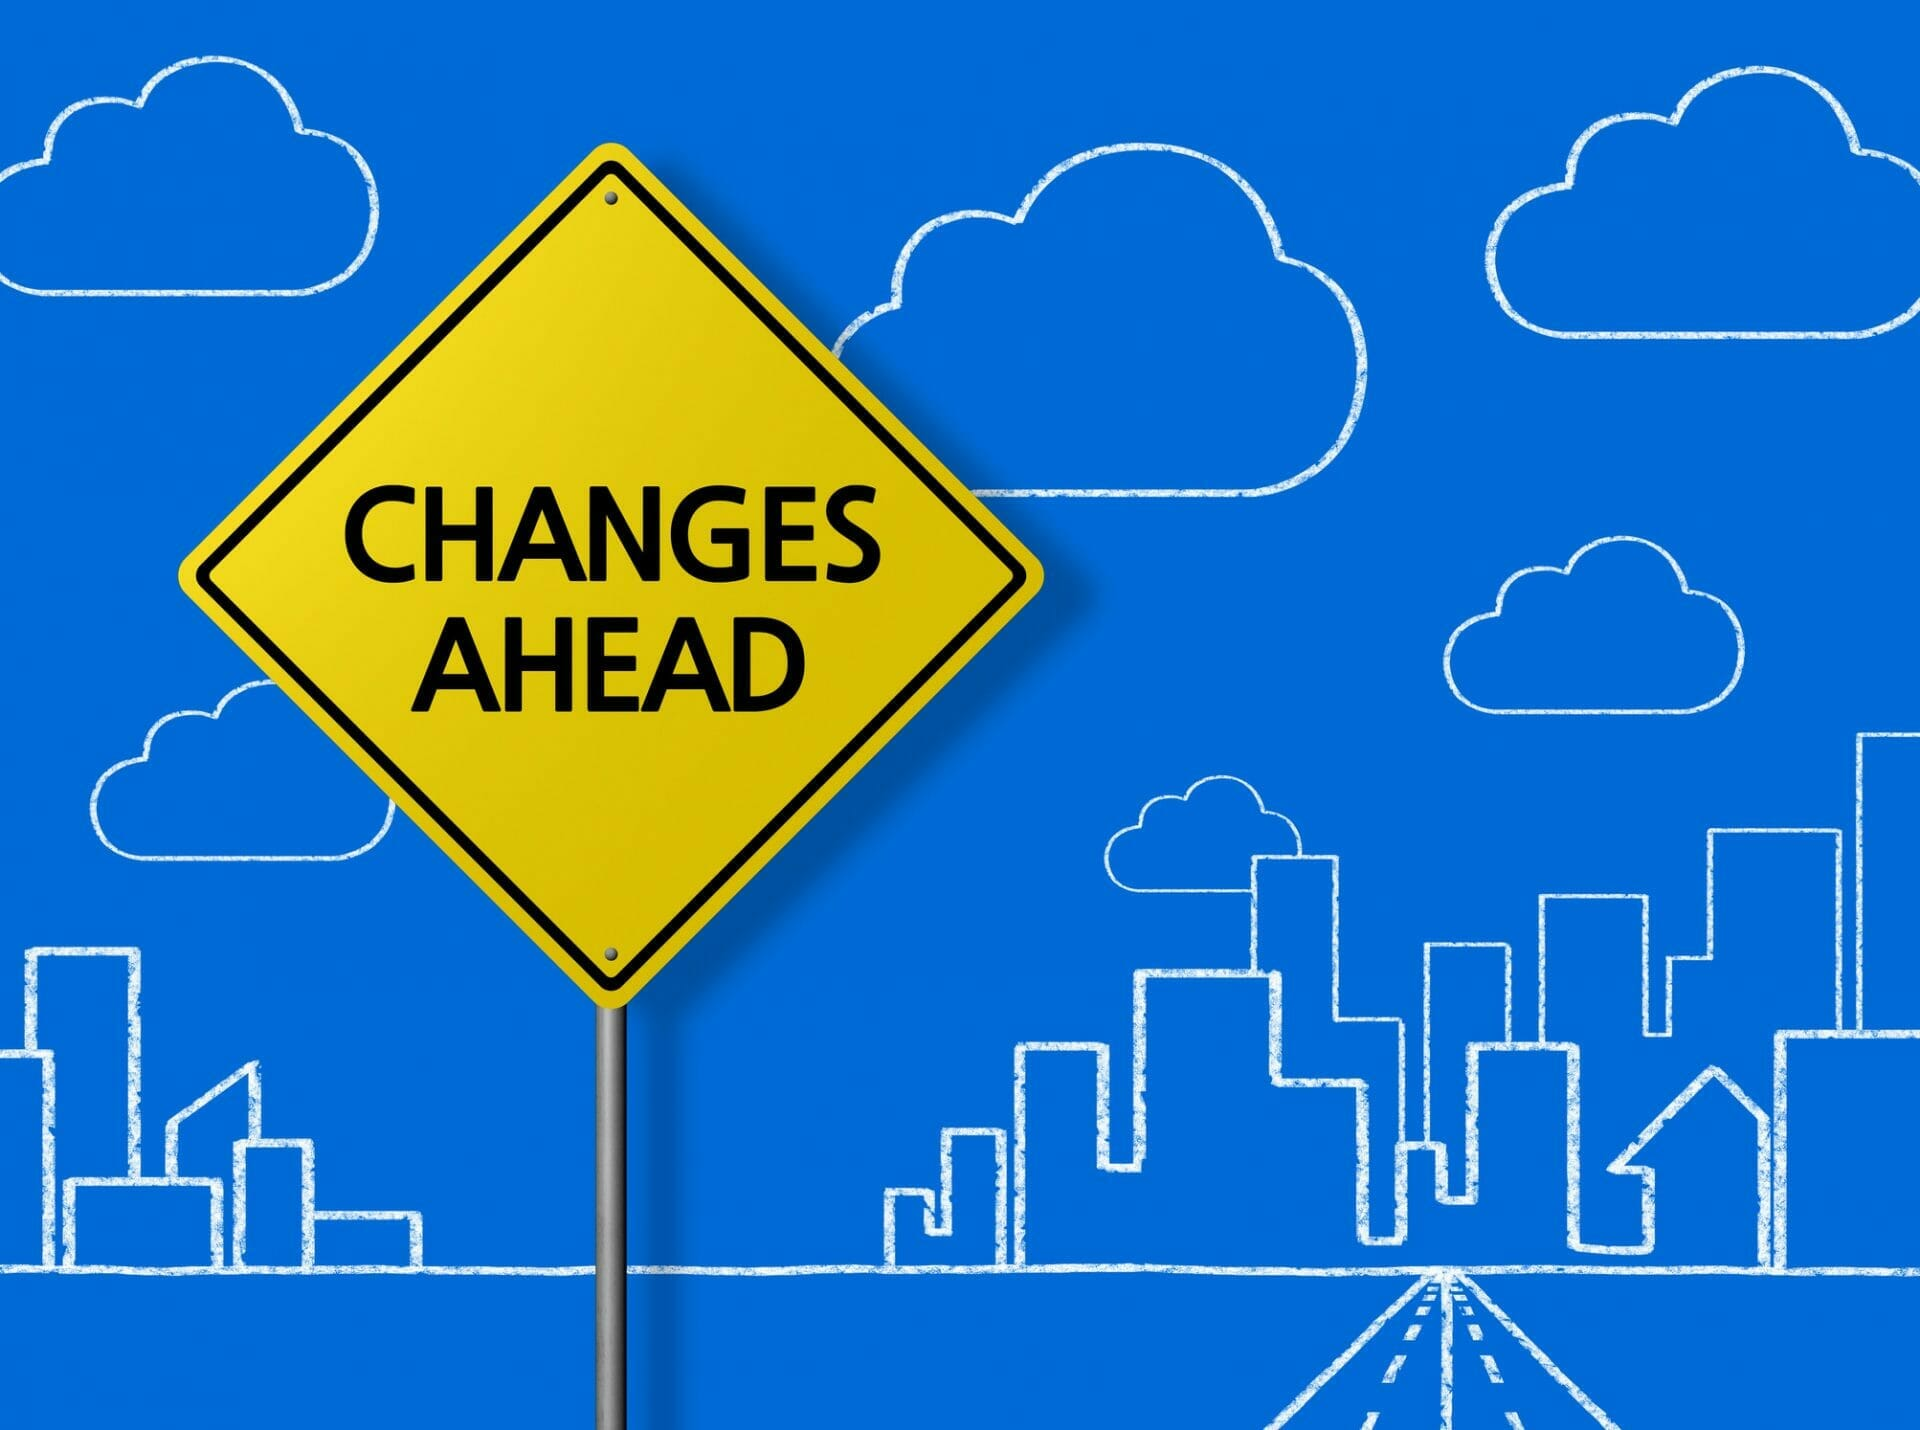 changes ahead sign - how COVID-19 changed the world